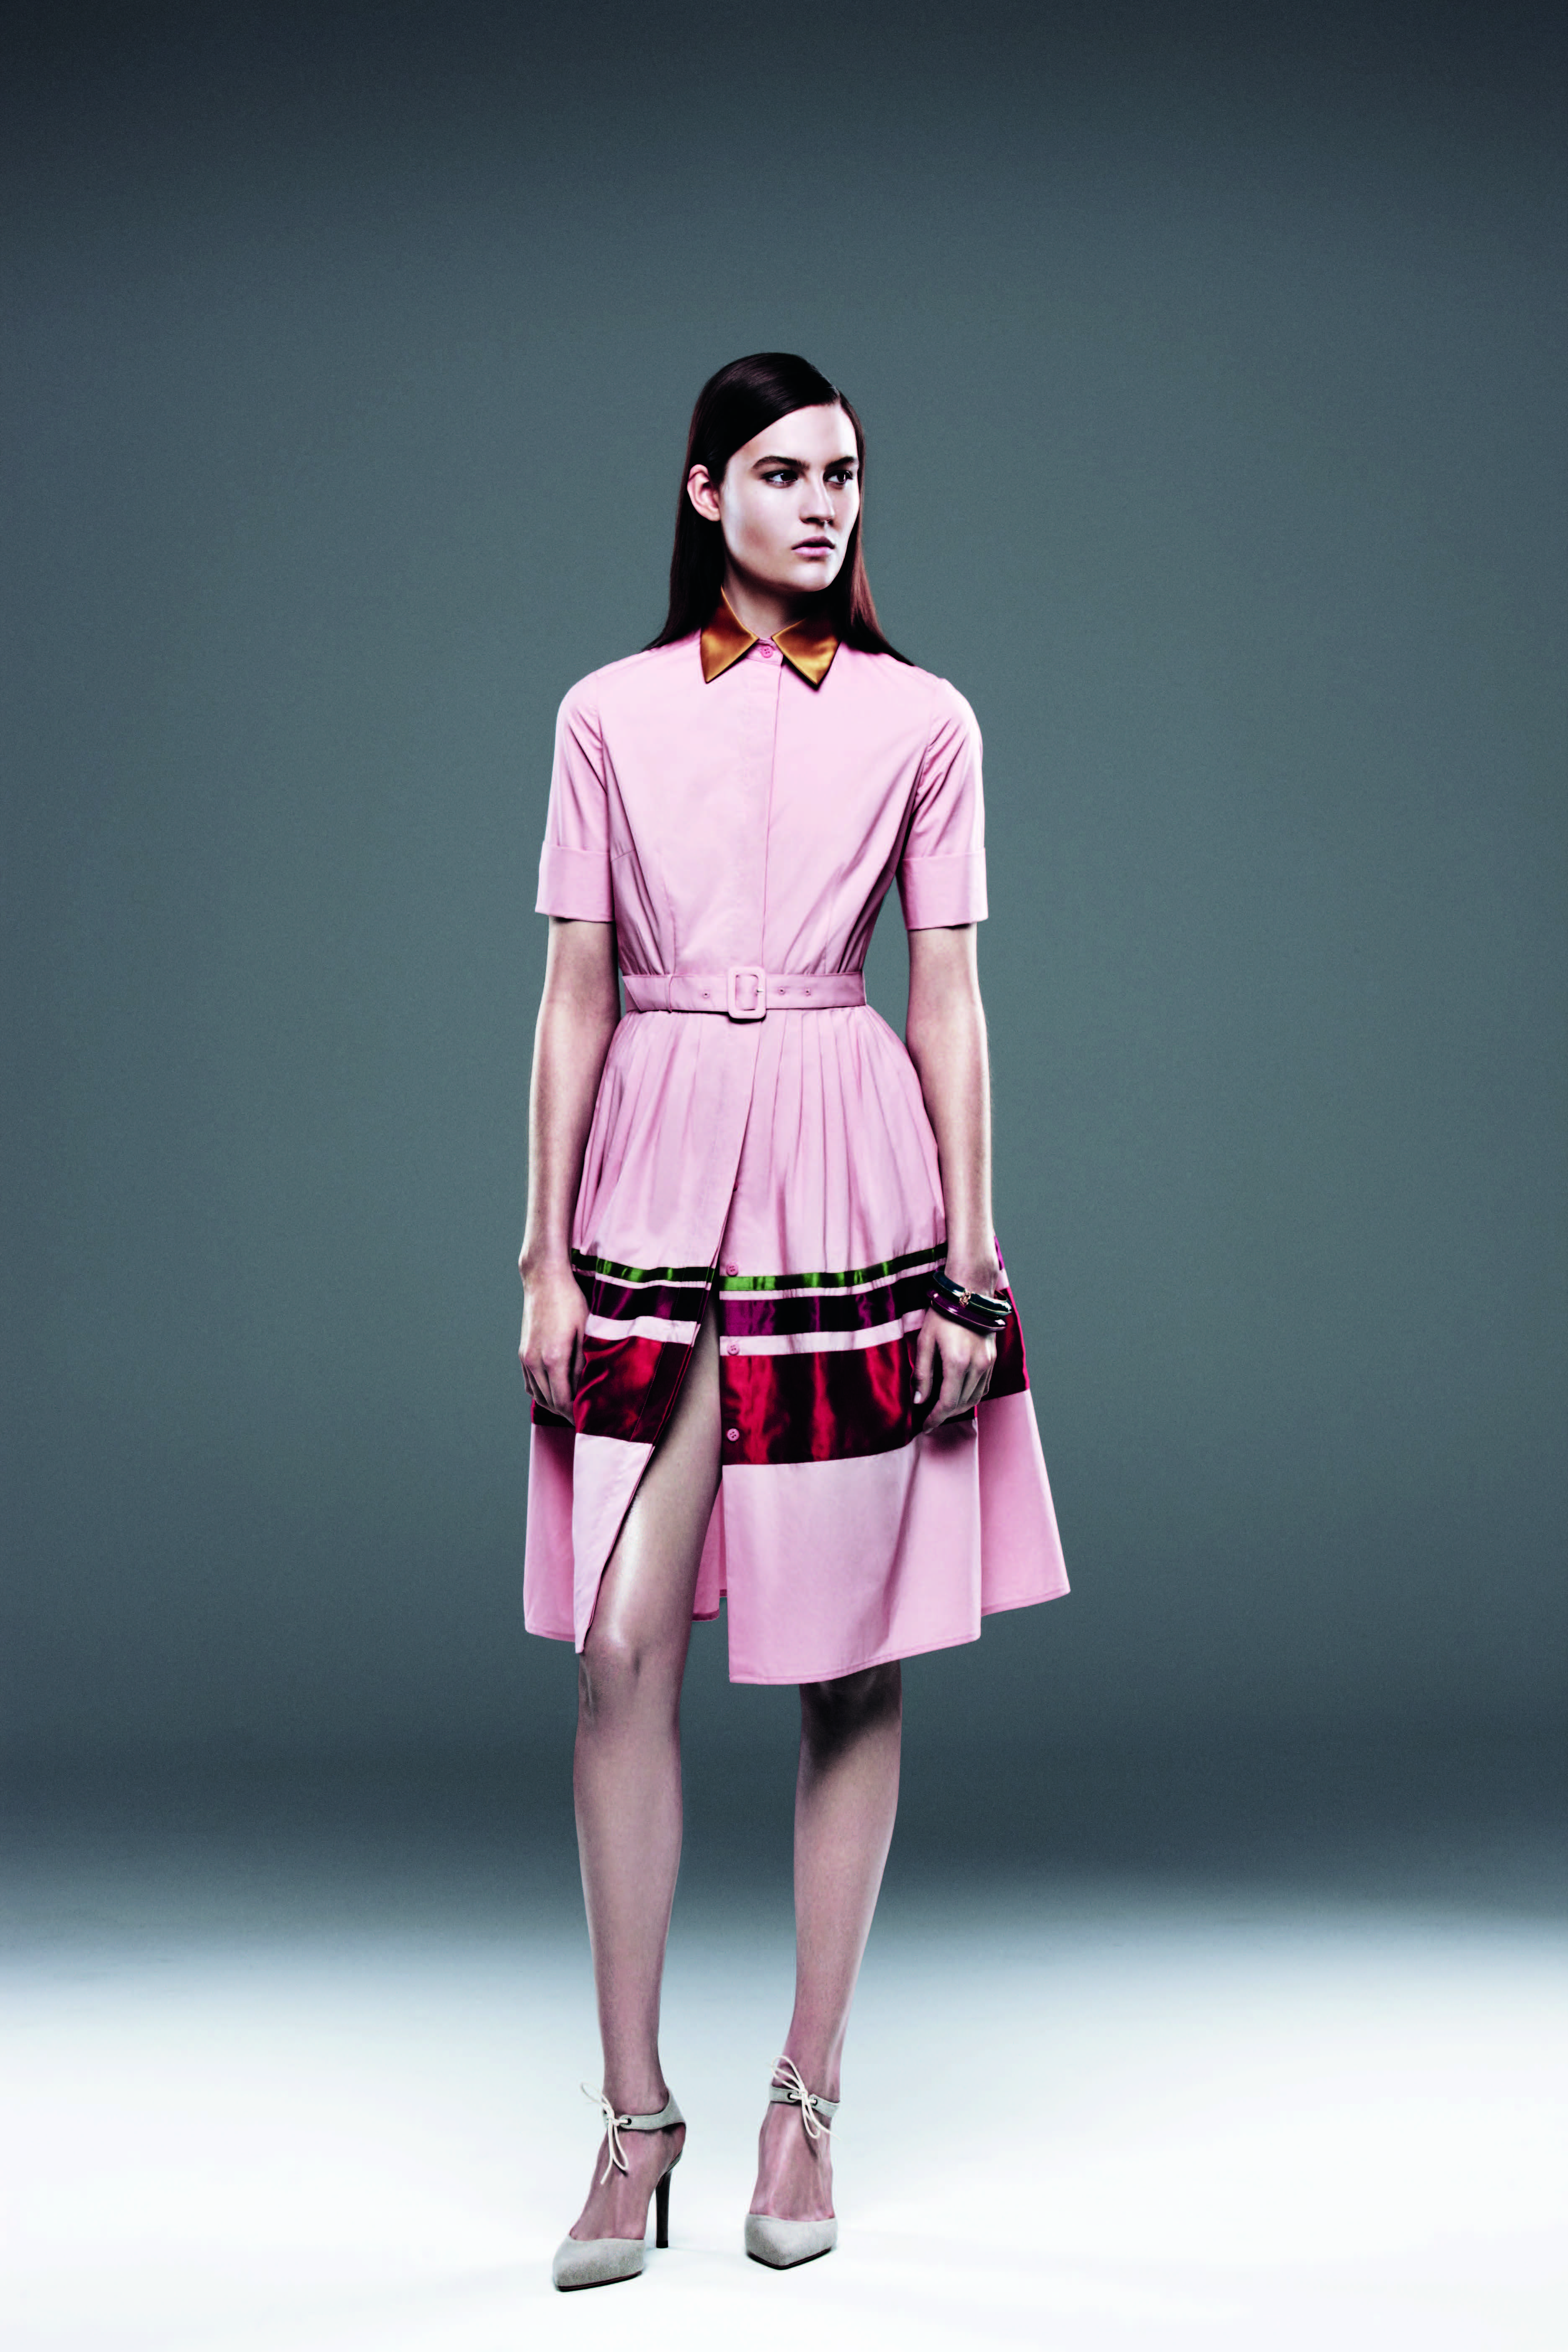 mix of cotton with the brilliance of the satin stripes